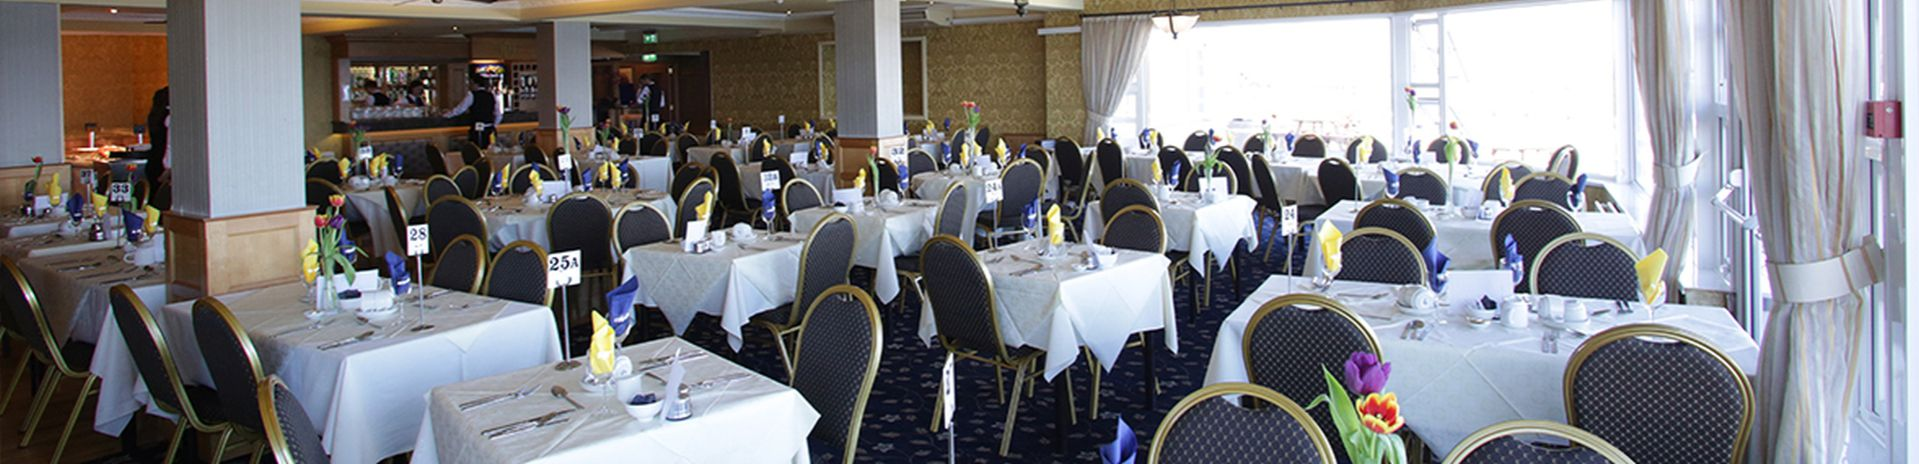 events room at royal court hotel